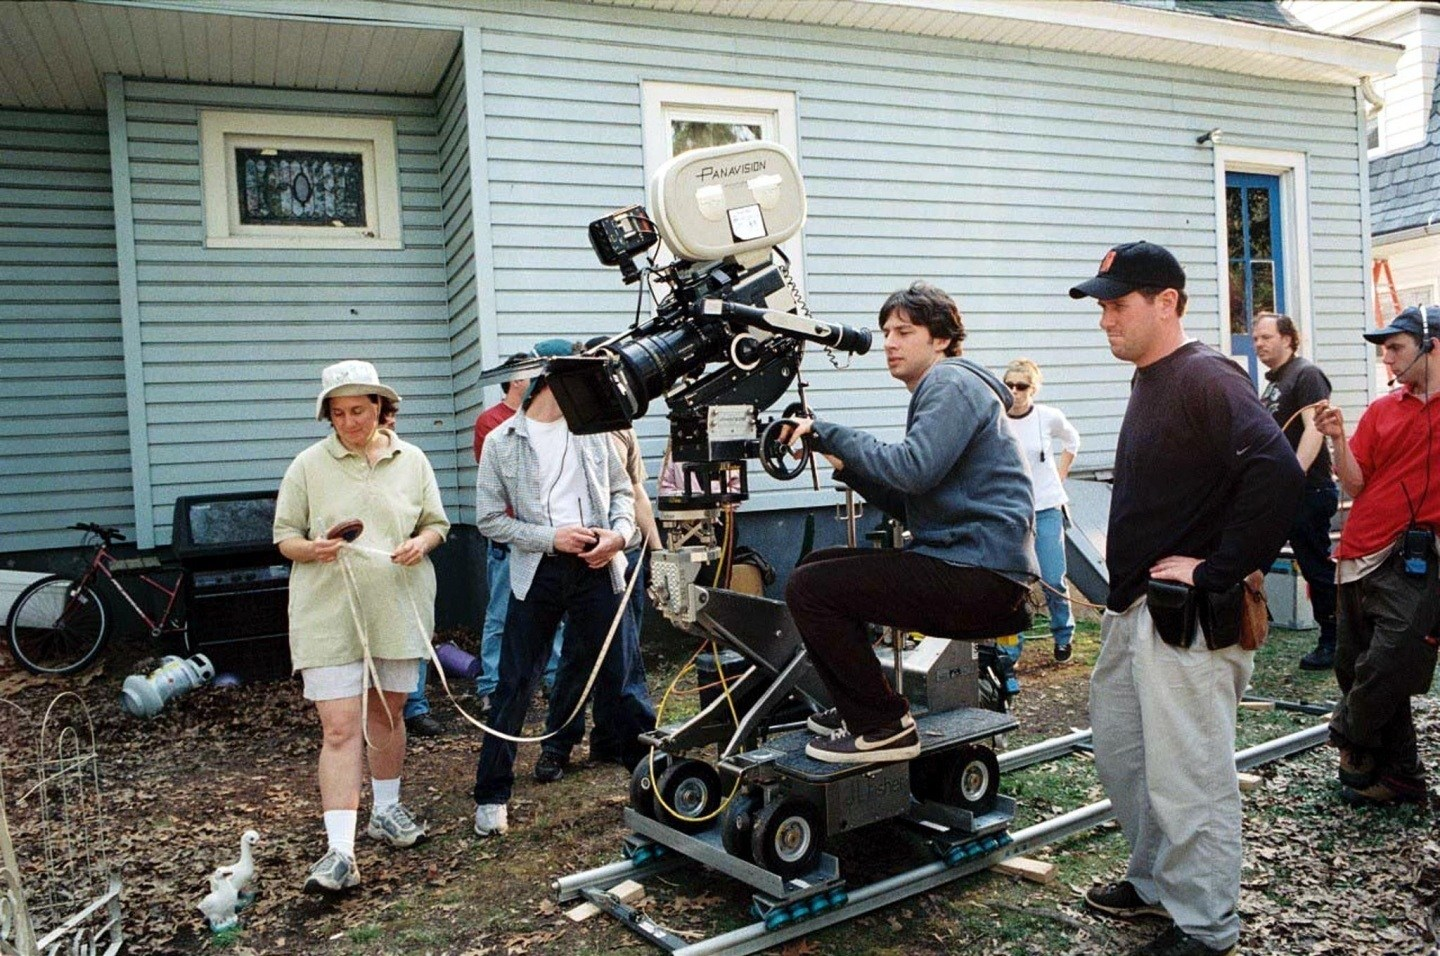 Garden State Behind the Scenes Photos & Tech Specs